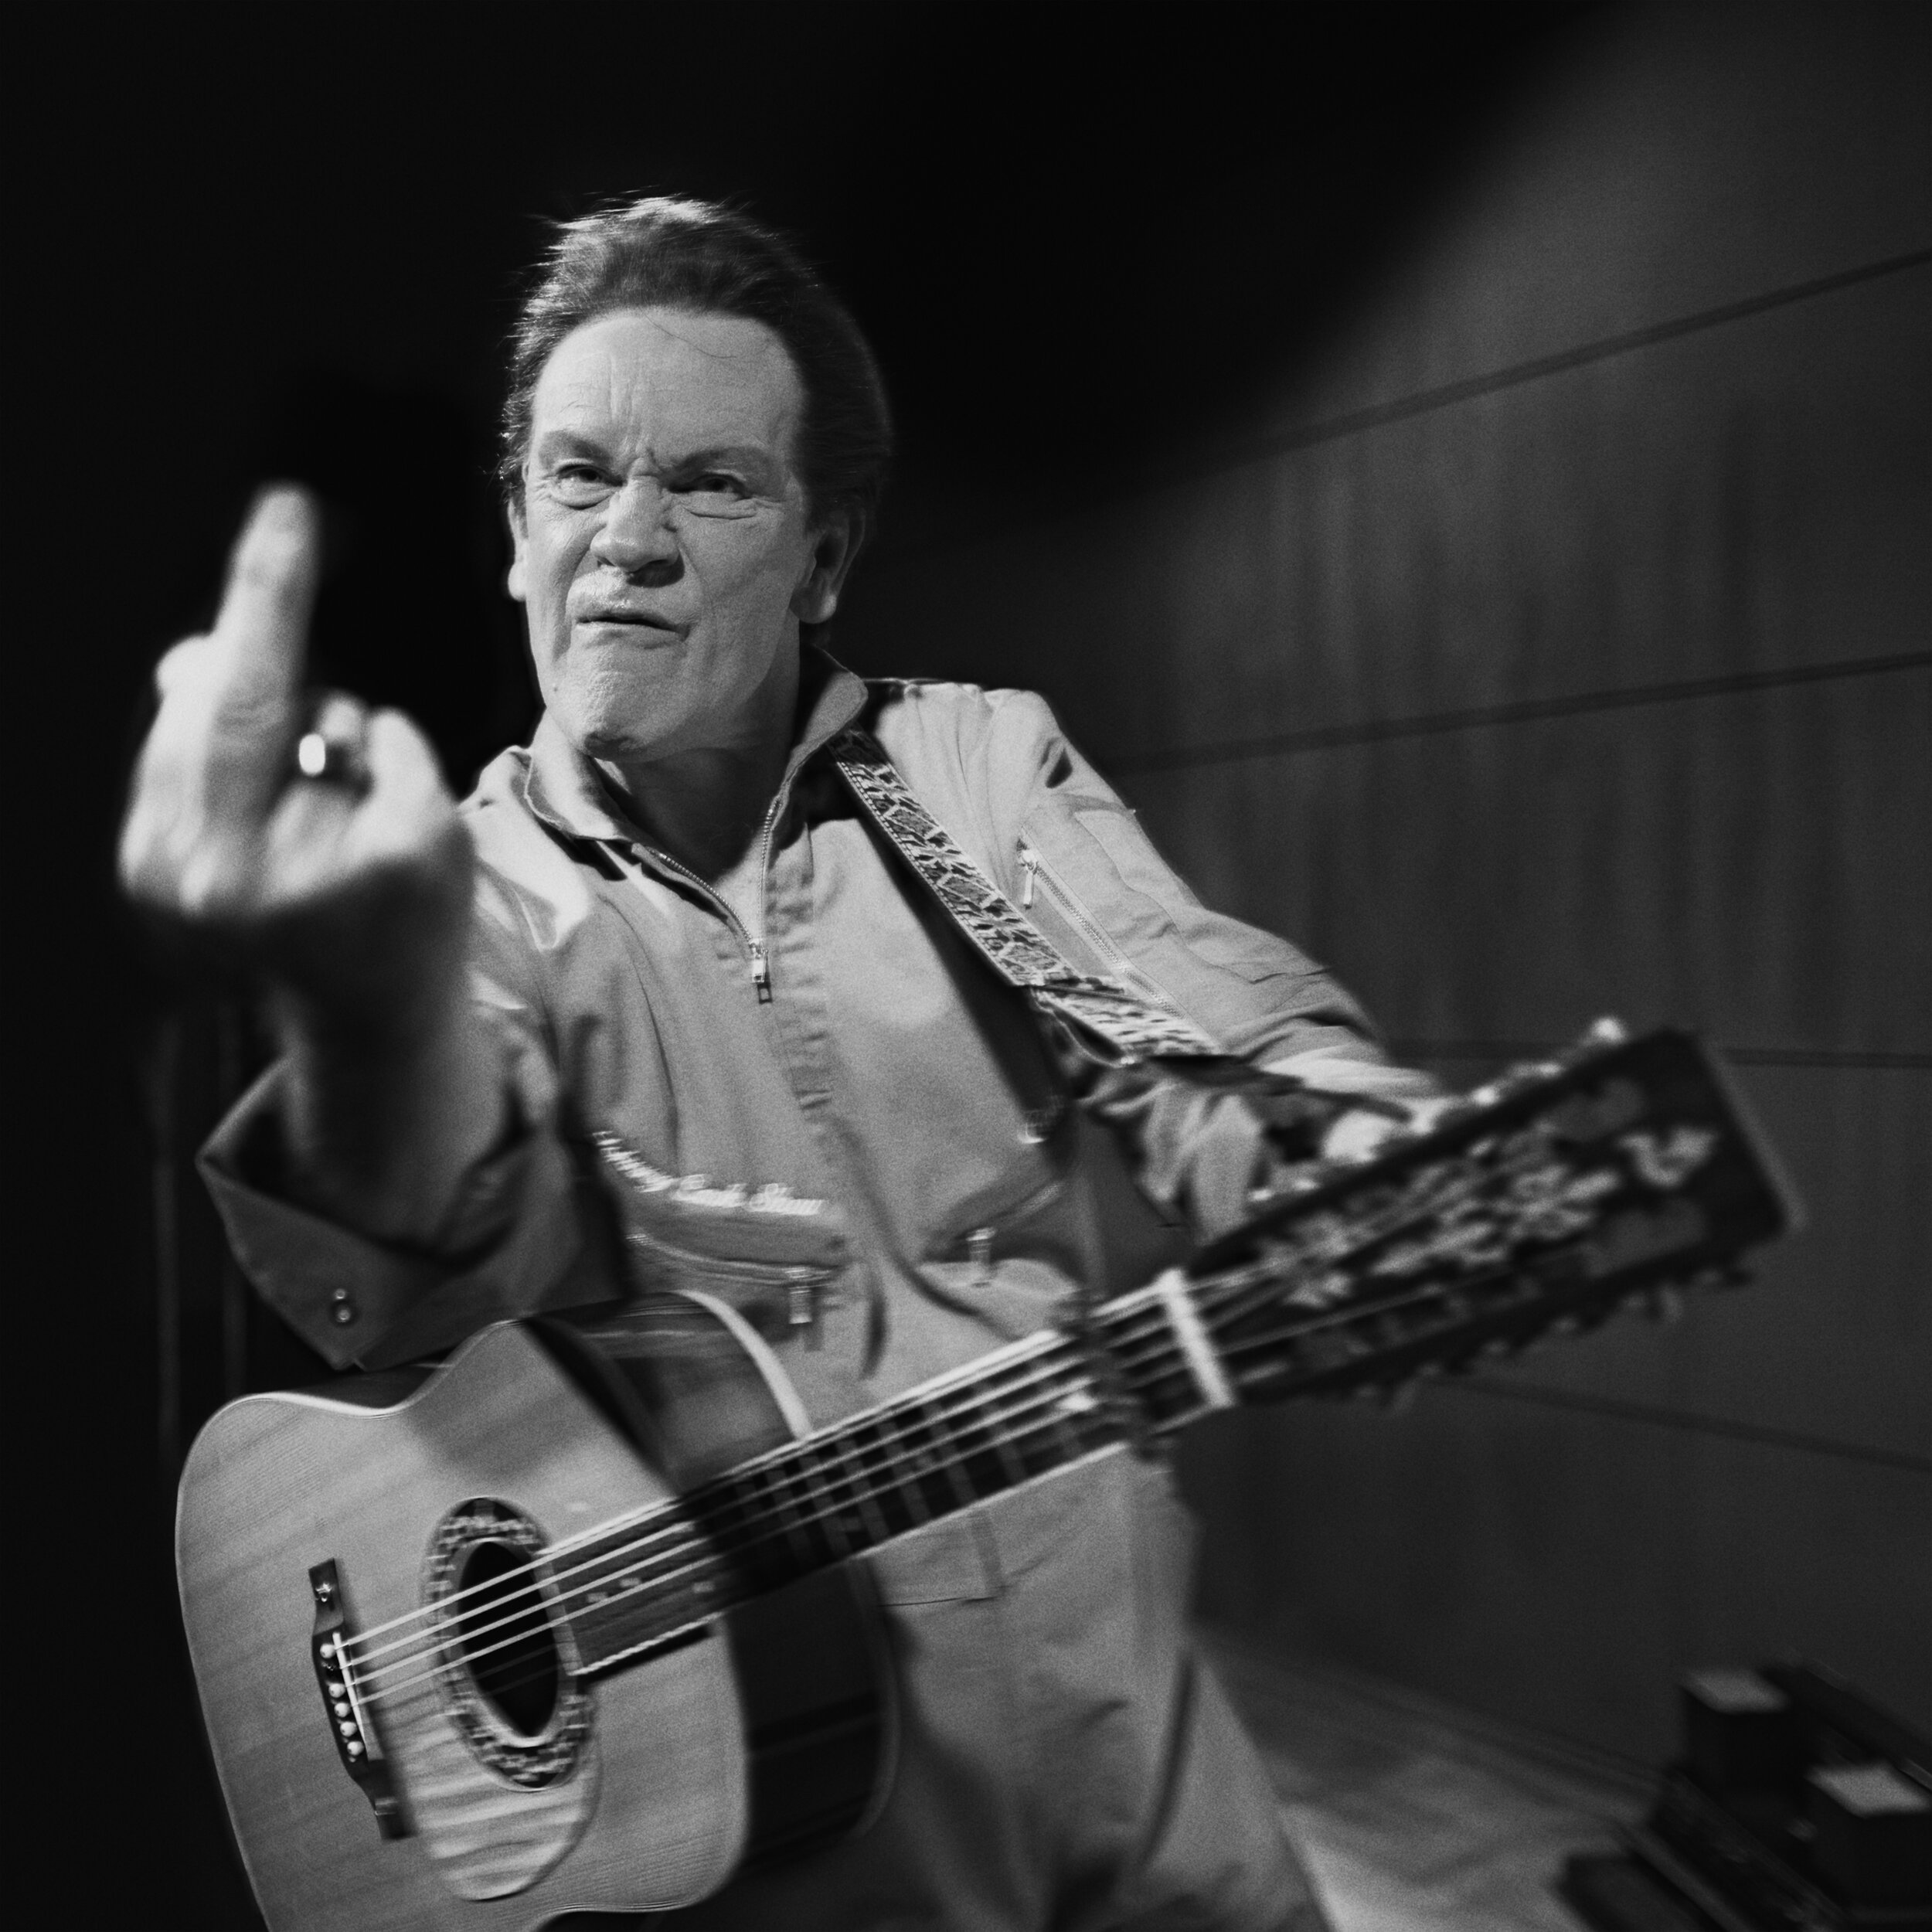 Jim Marshall _ Johnny Cash (Flipping the Bird), San Quentin Prison (1969), 2014.jpg